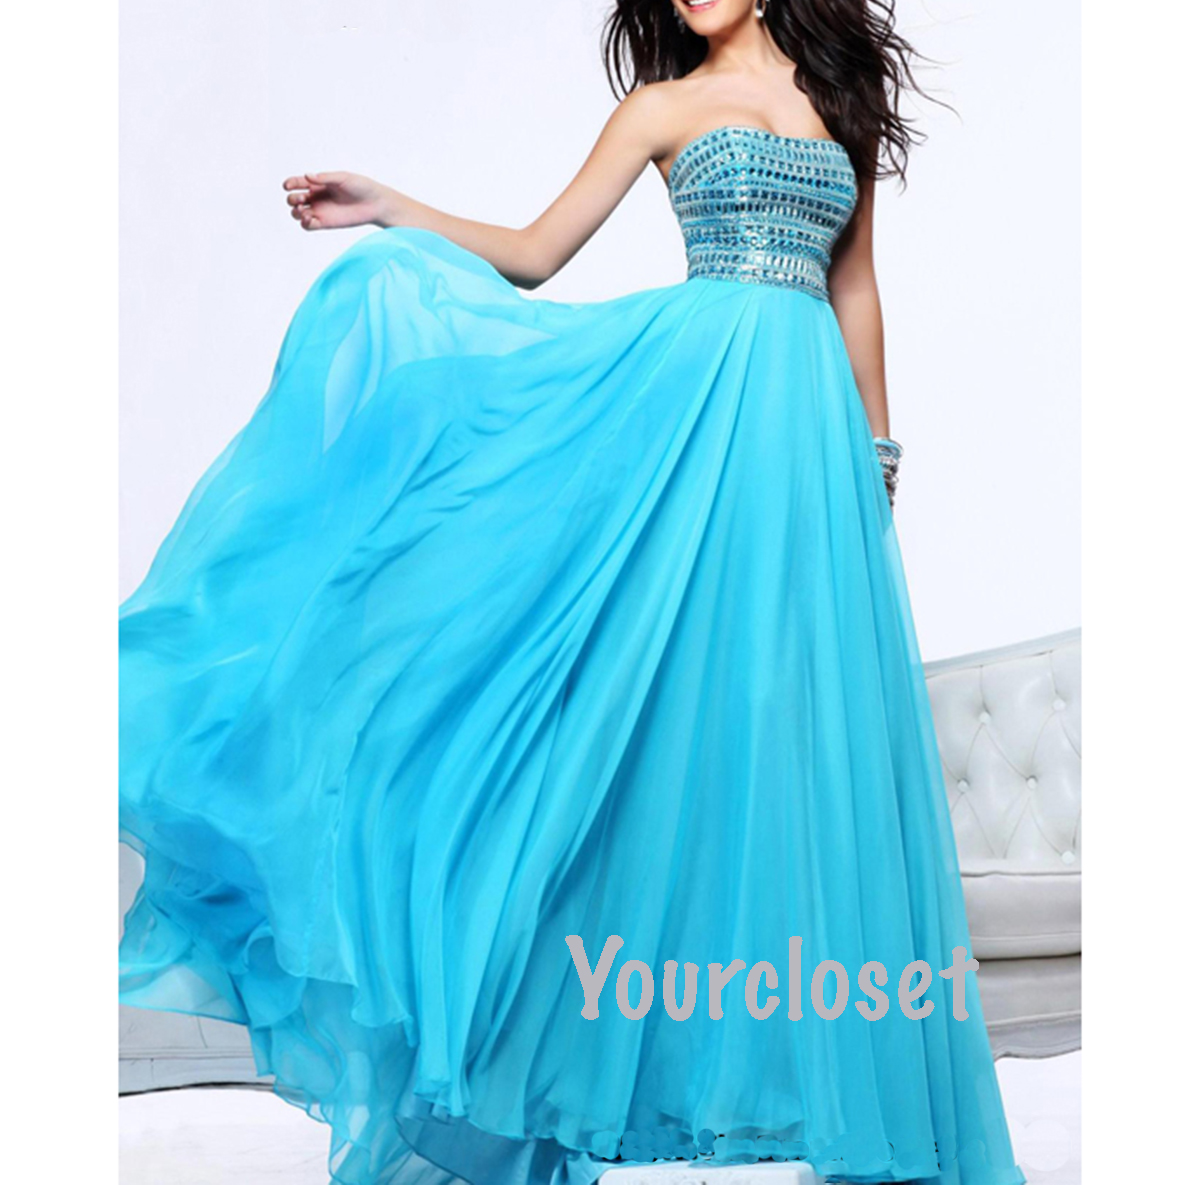 Short Prom Dresses Jcpenney - Gown And Dress Gallery